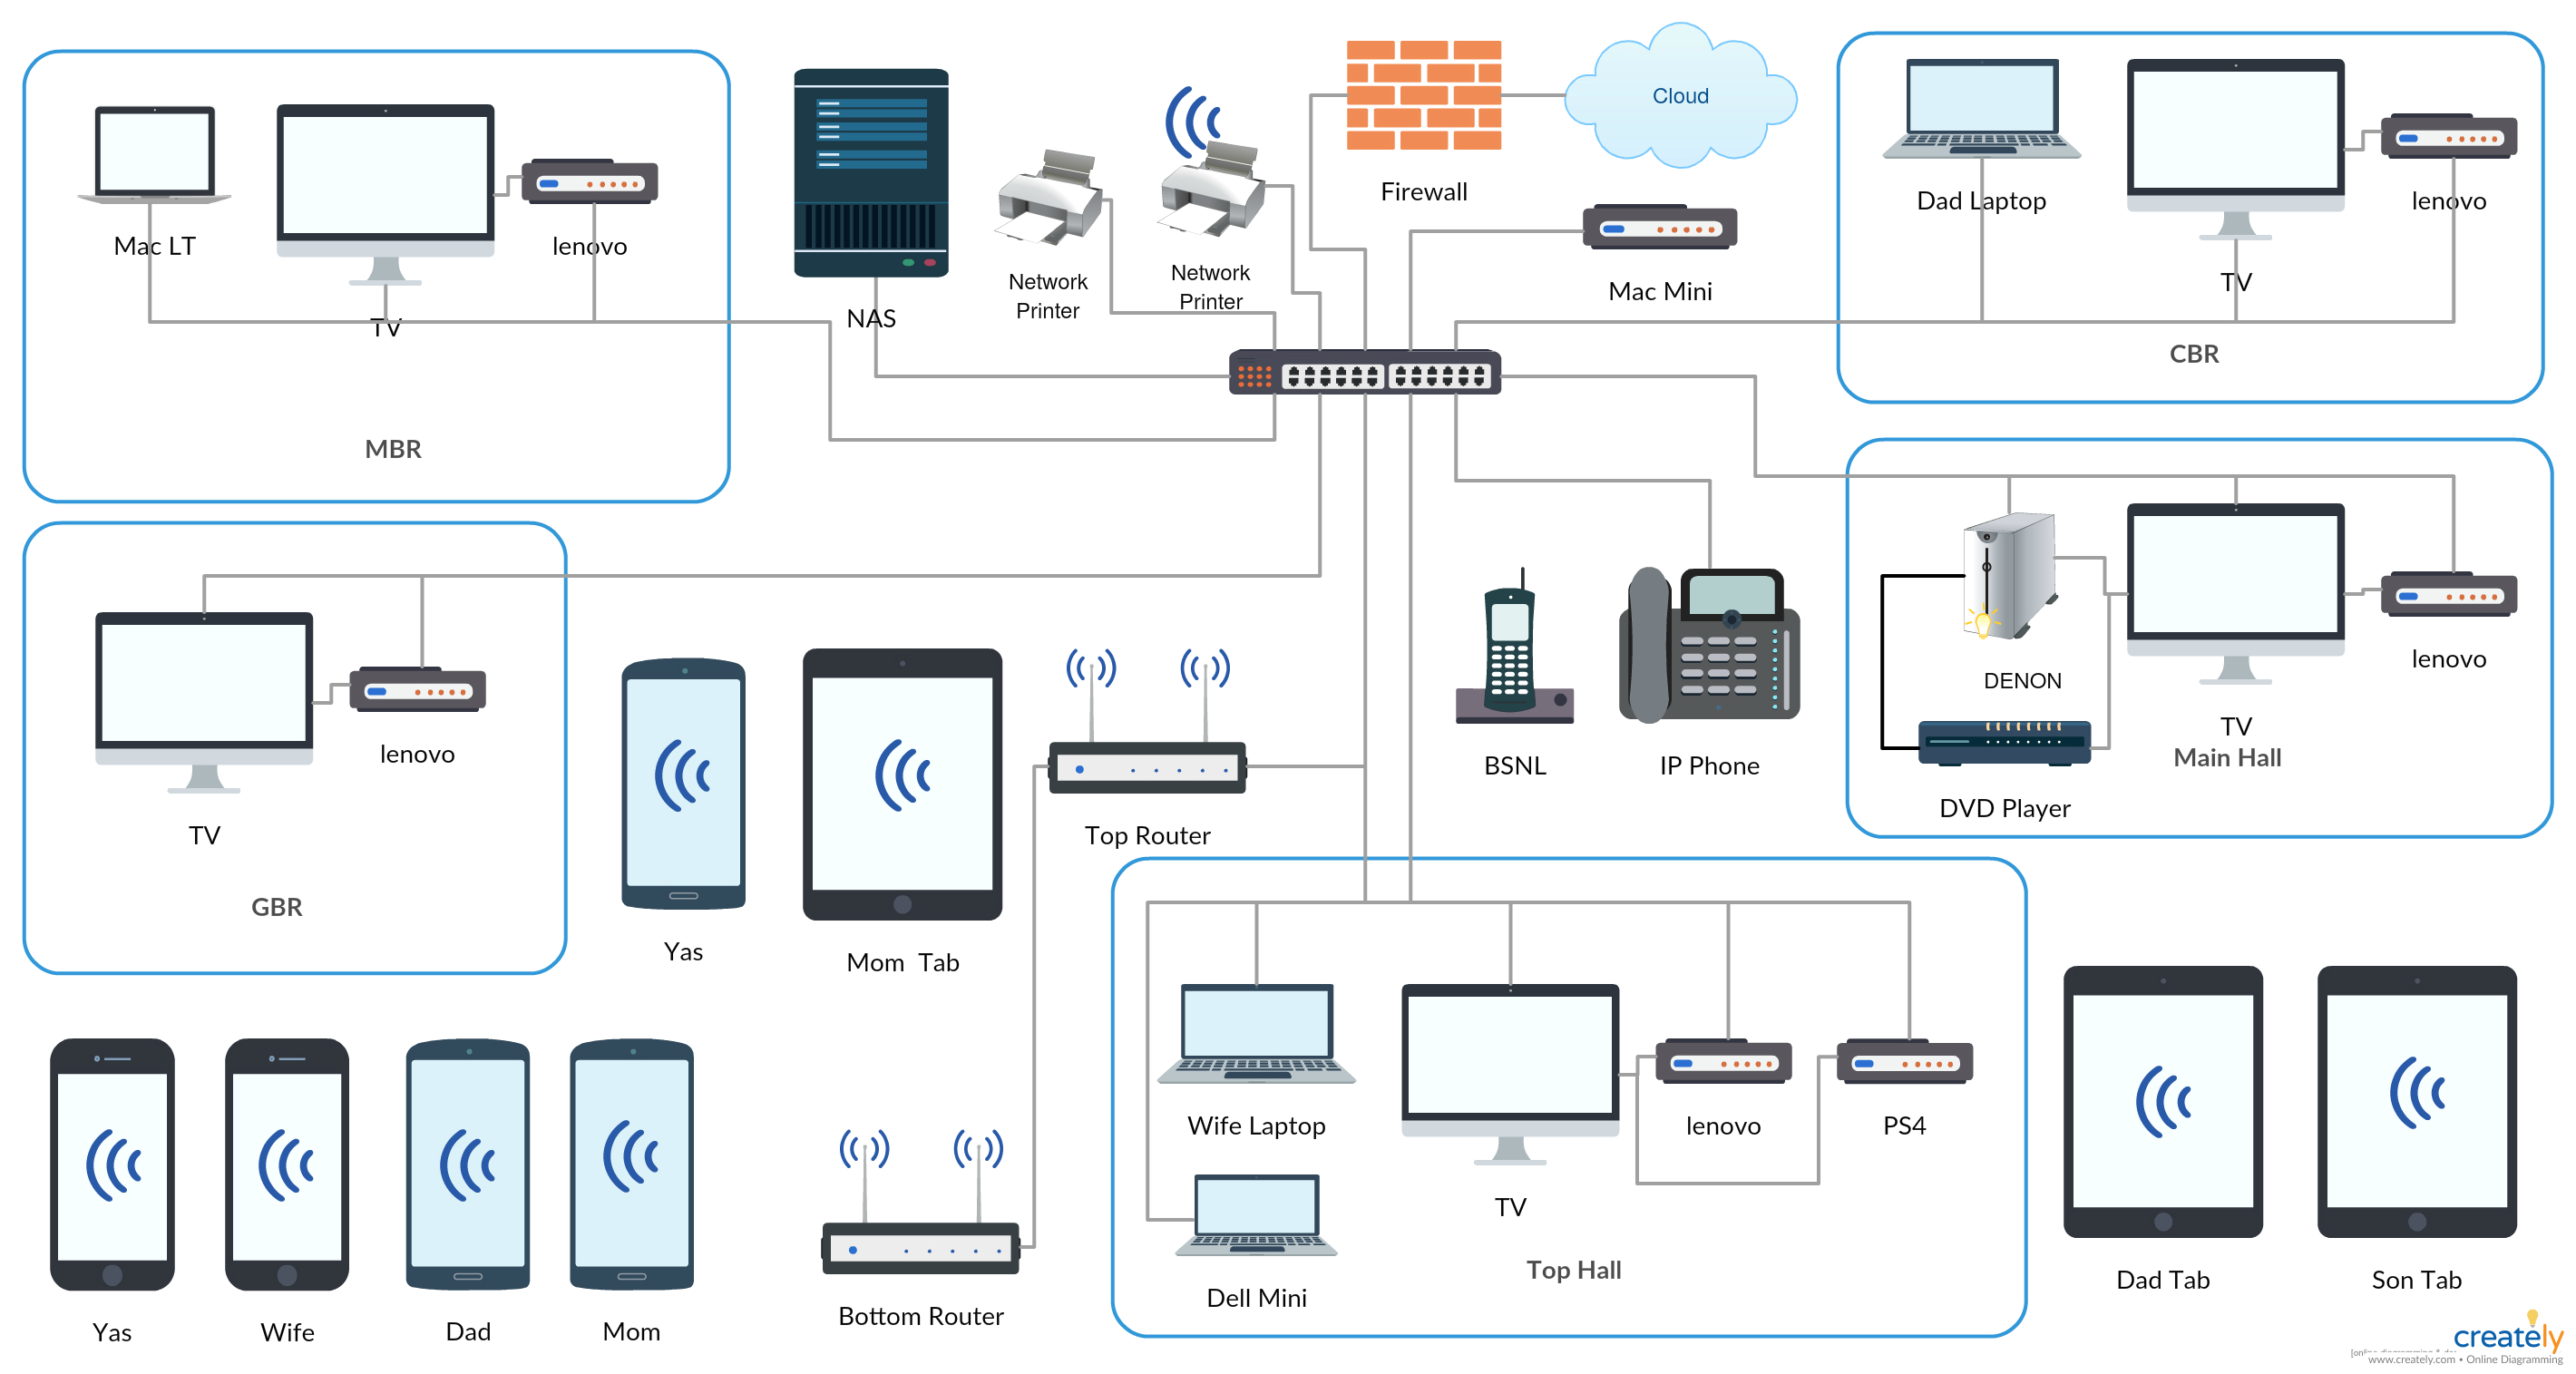 medium resolution of home network plan this diagram shows the network setup using cisco networking objects you can use this to modify and create your own home network setup